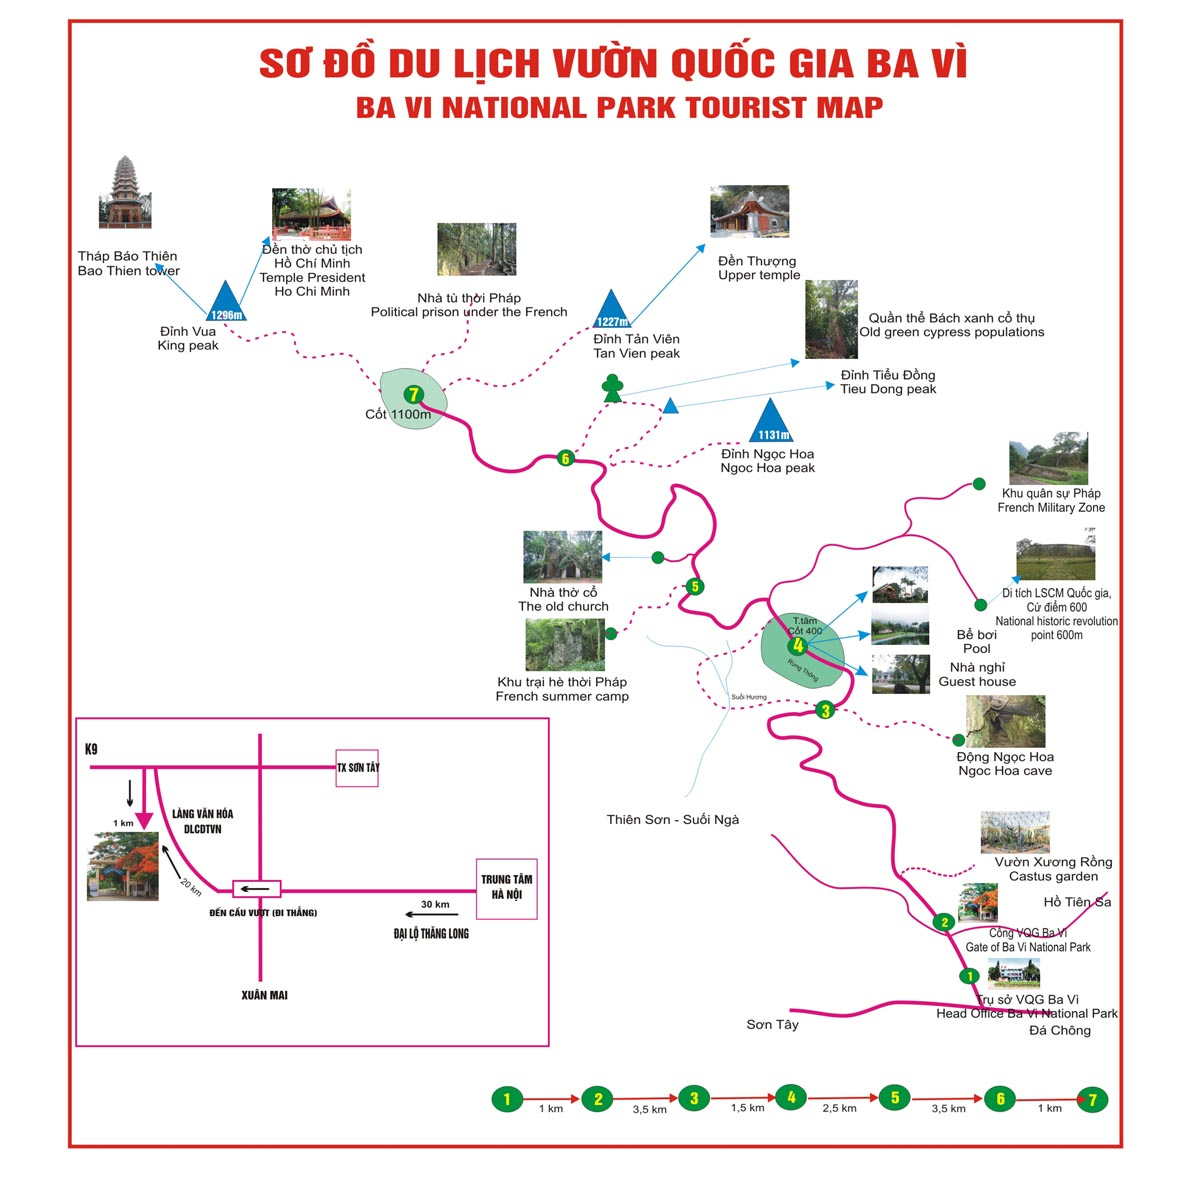 ba-vi-national-park-tourist-map